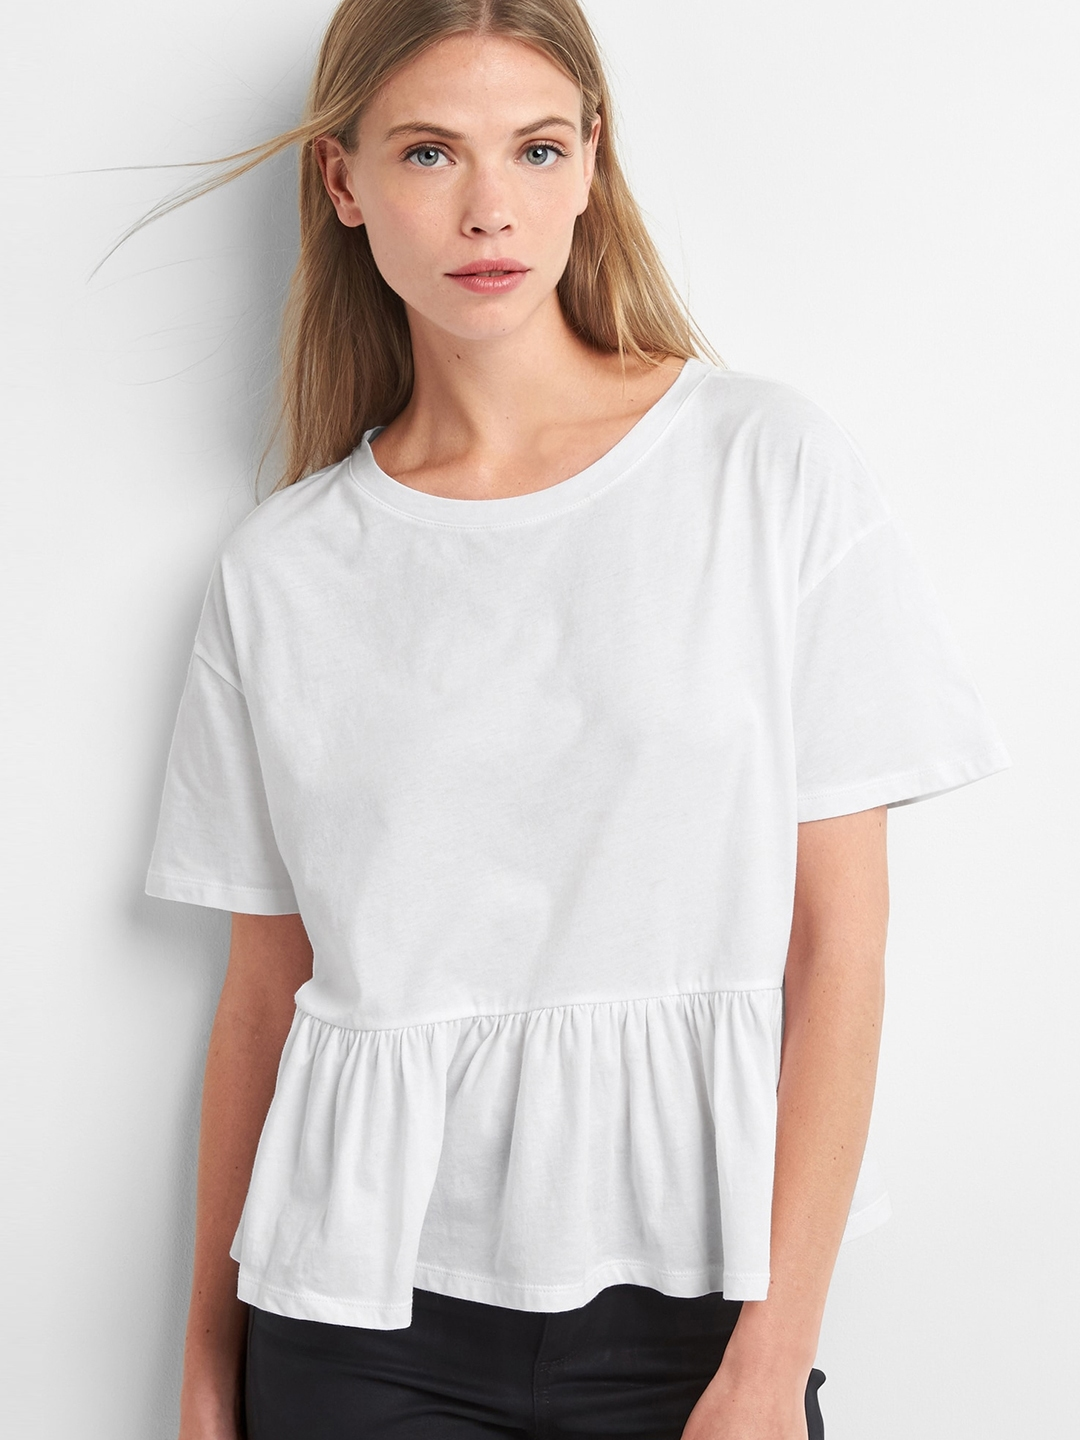 GAP White Solid Short Sleeve Ruffle Pure Cotton Top